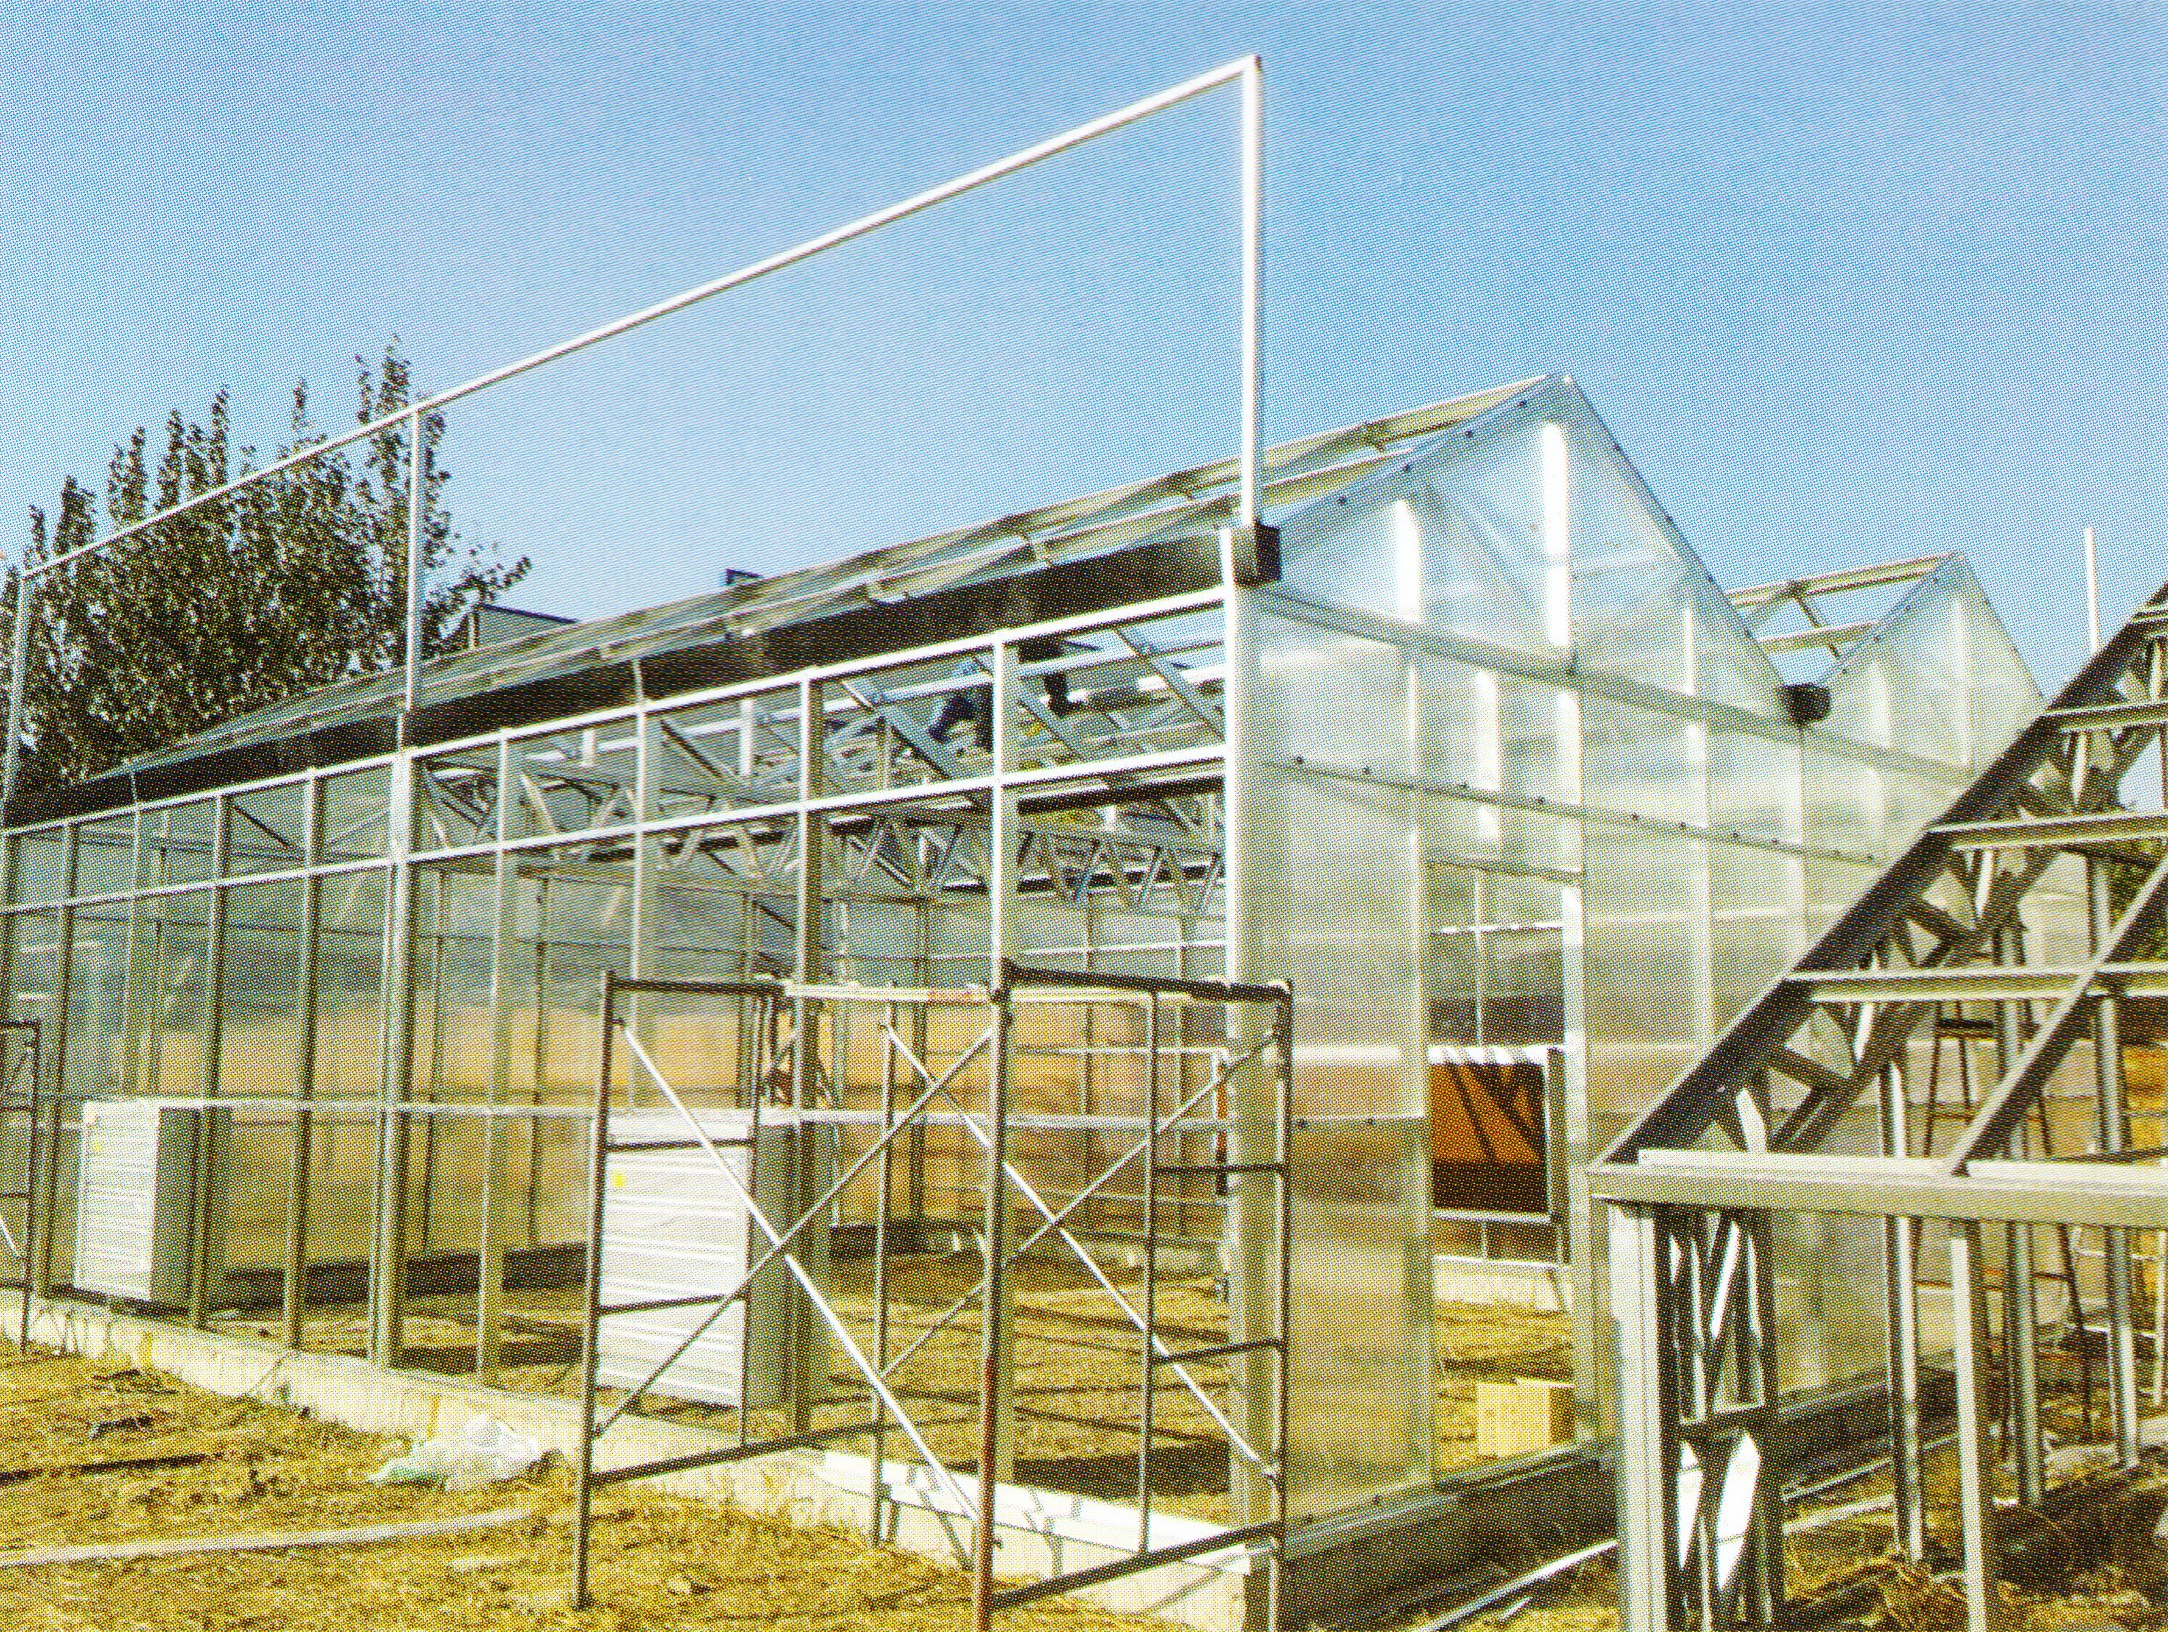 Sunlight Greenhouse 03